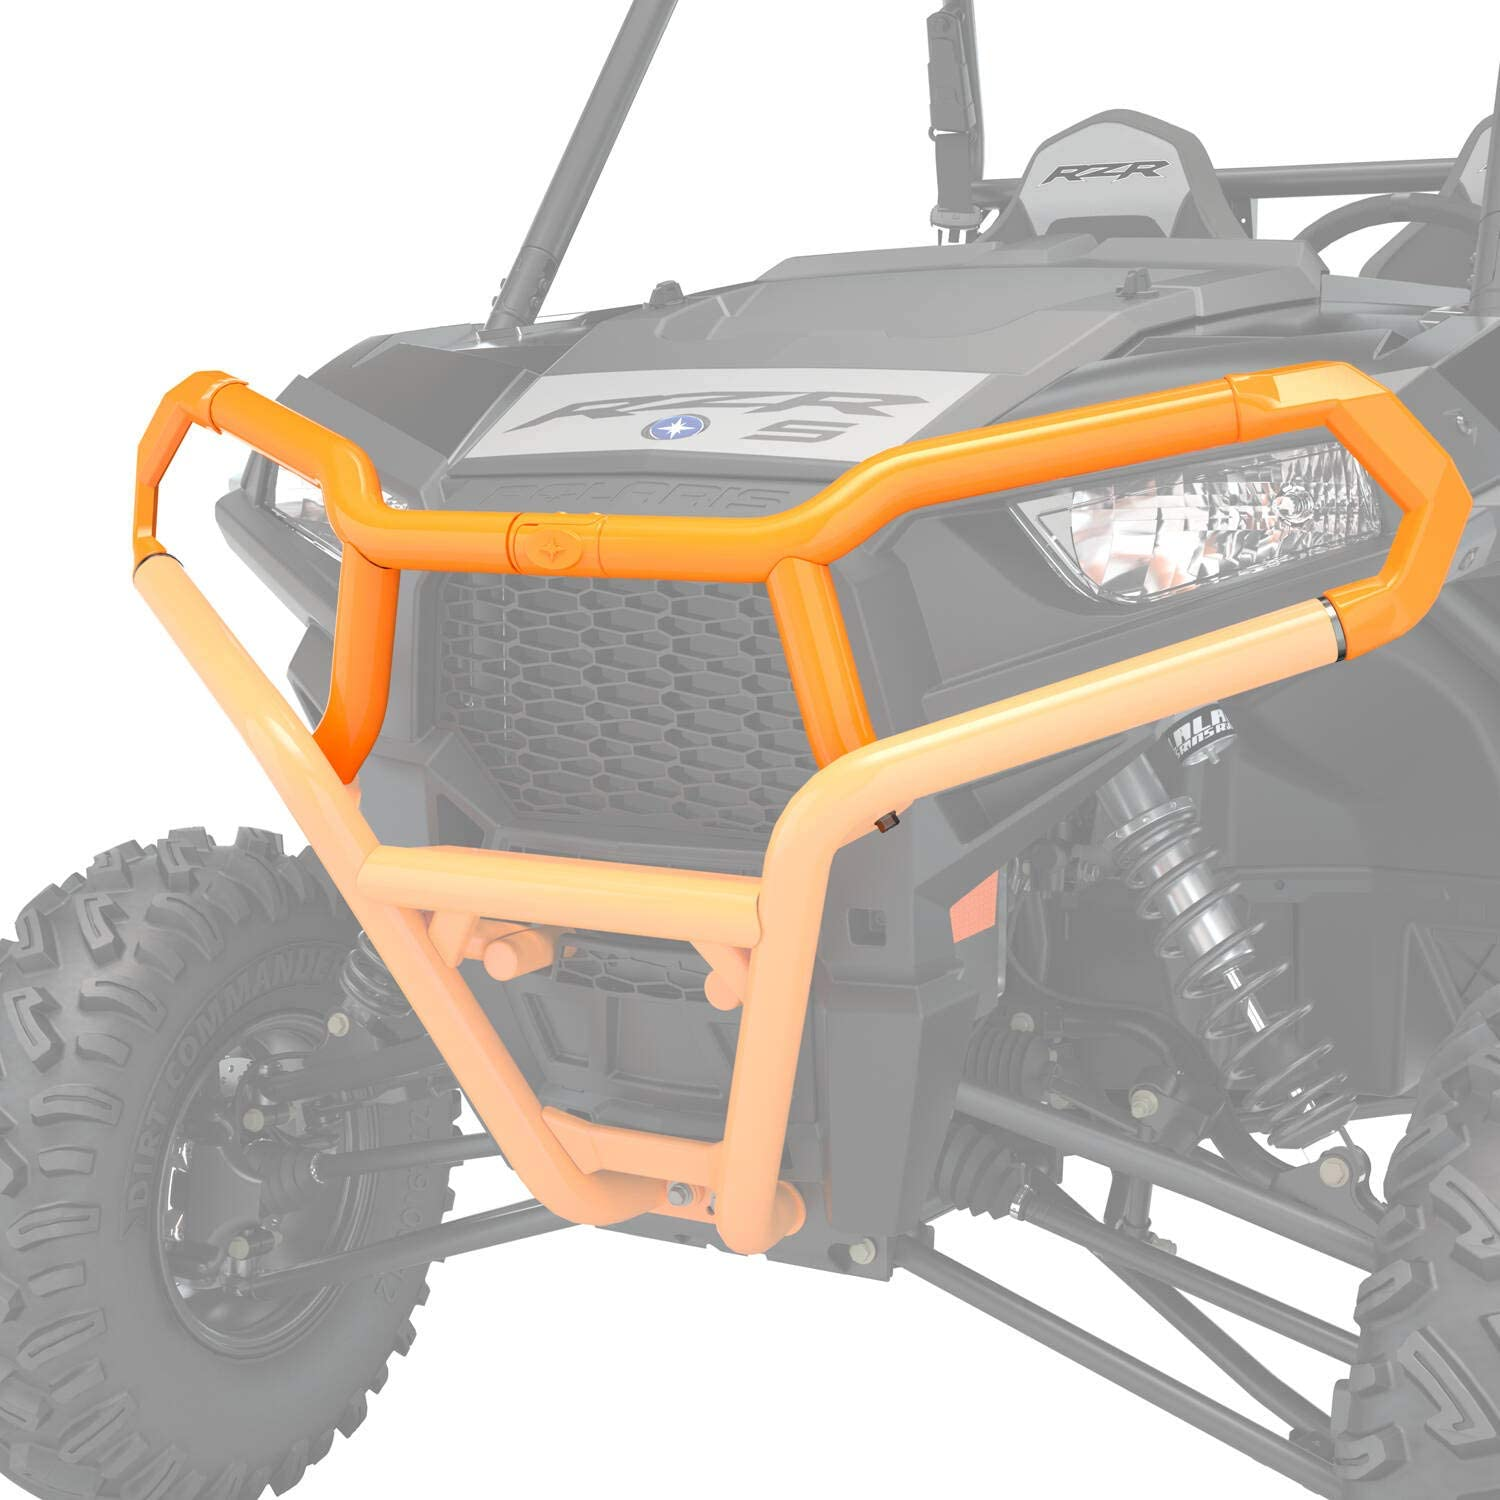 Polaris Front Extreme Mail order cheap Bumper Attachment Spectra Orange NEW before selling ☆